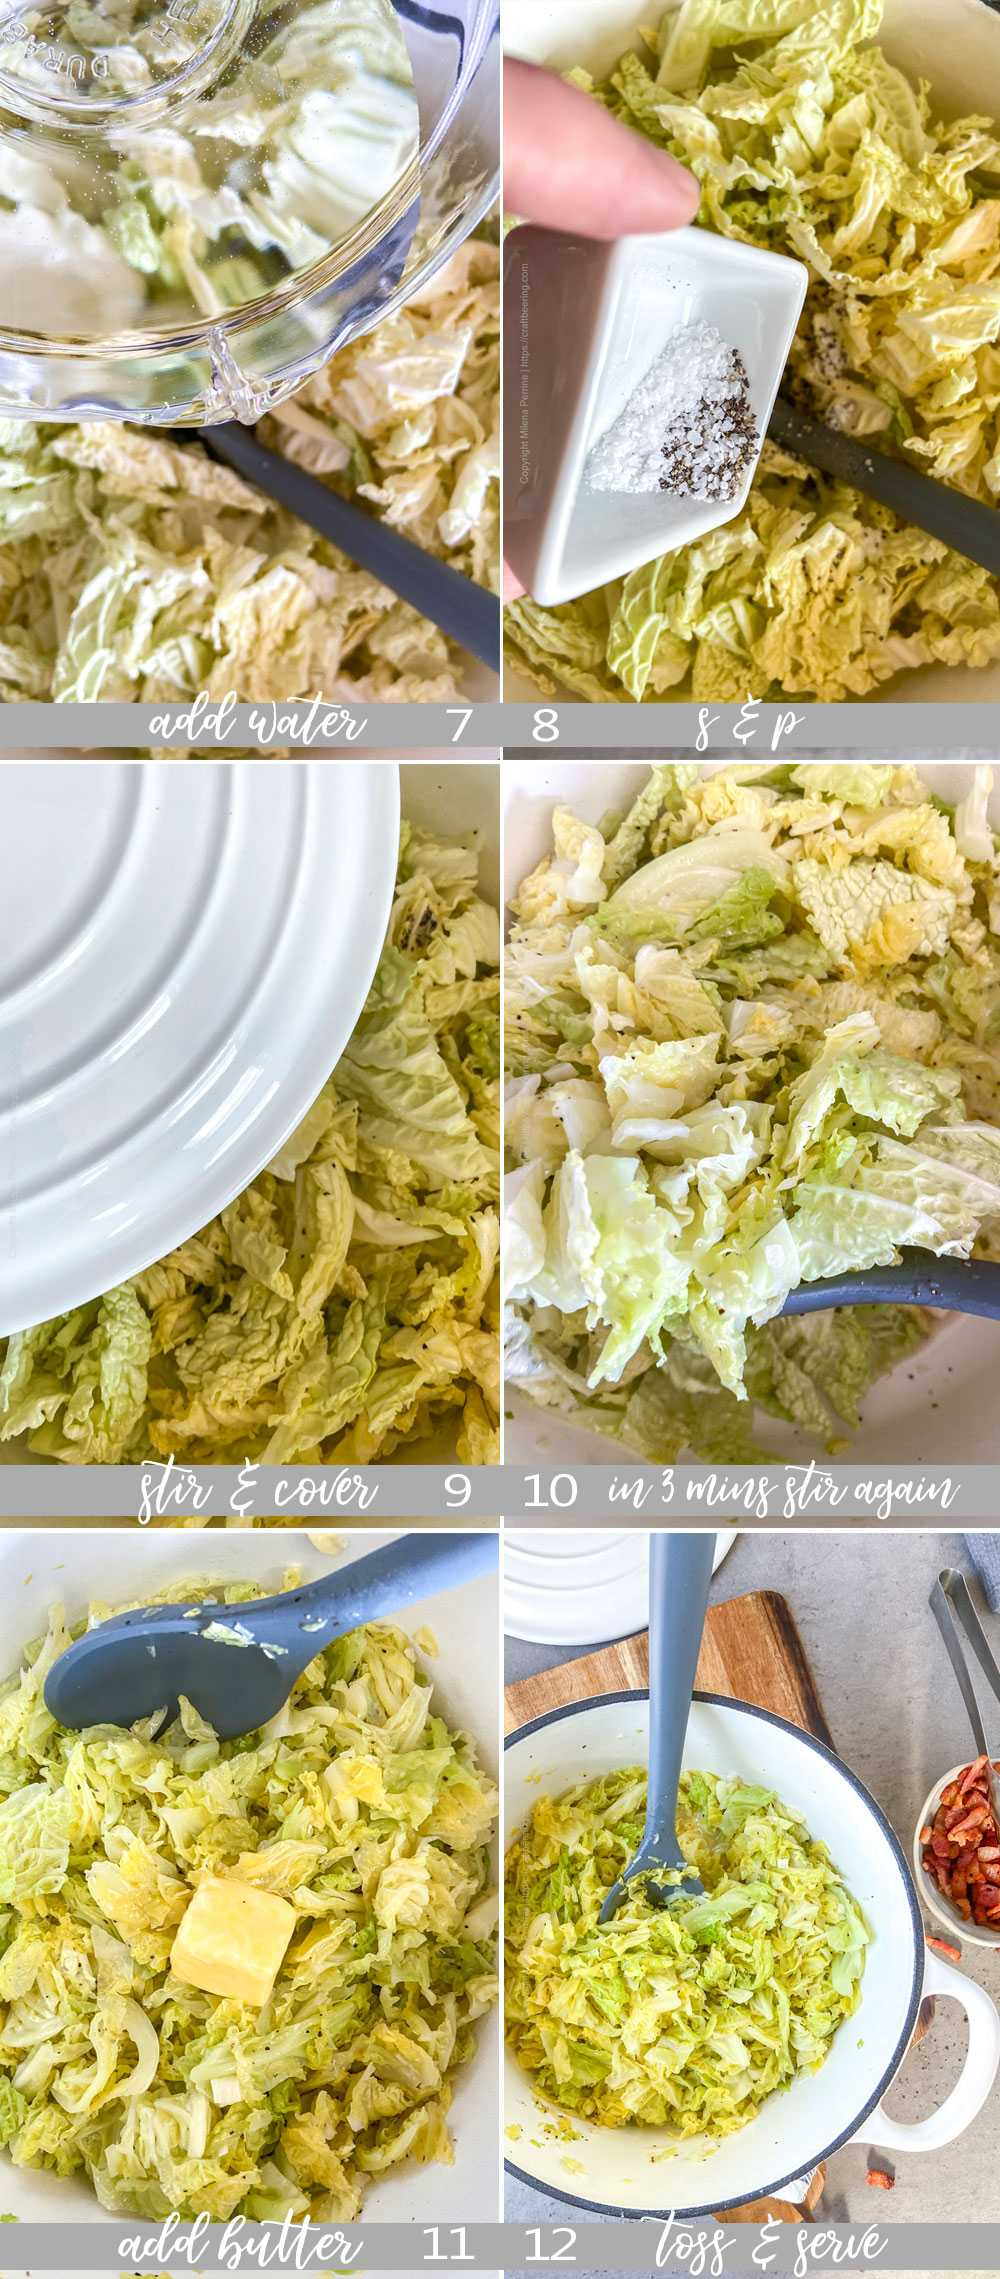 How to make buttered cabbage with Savoy - process pictures, part 2